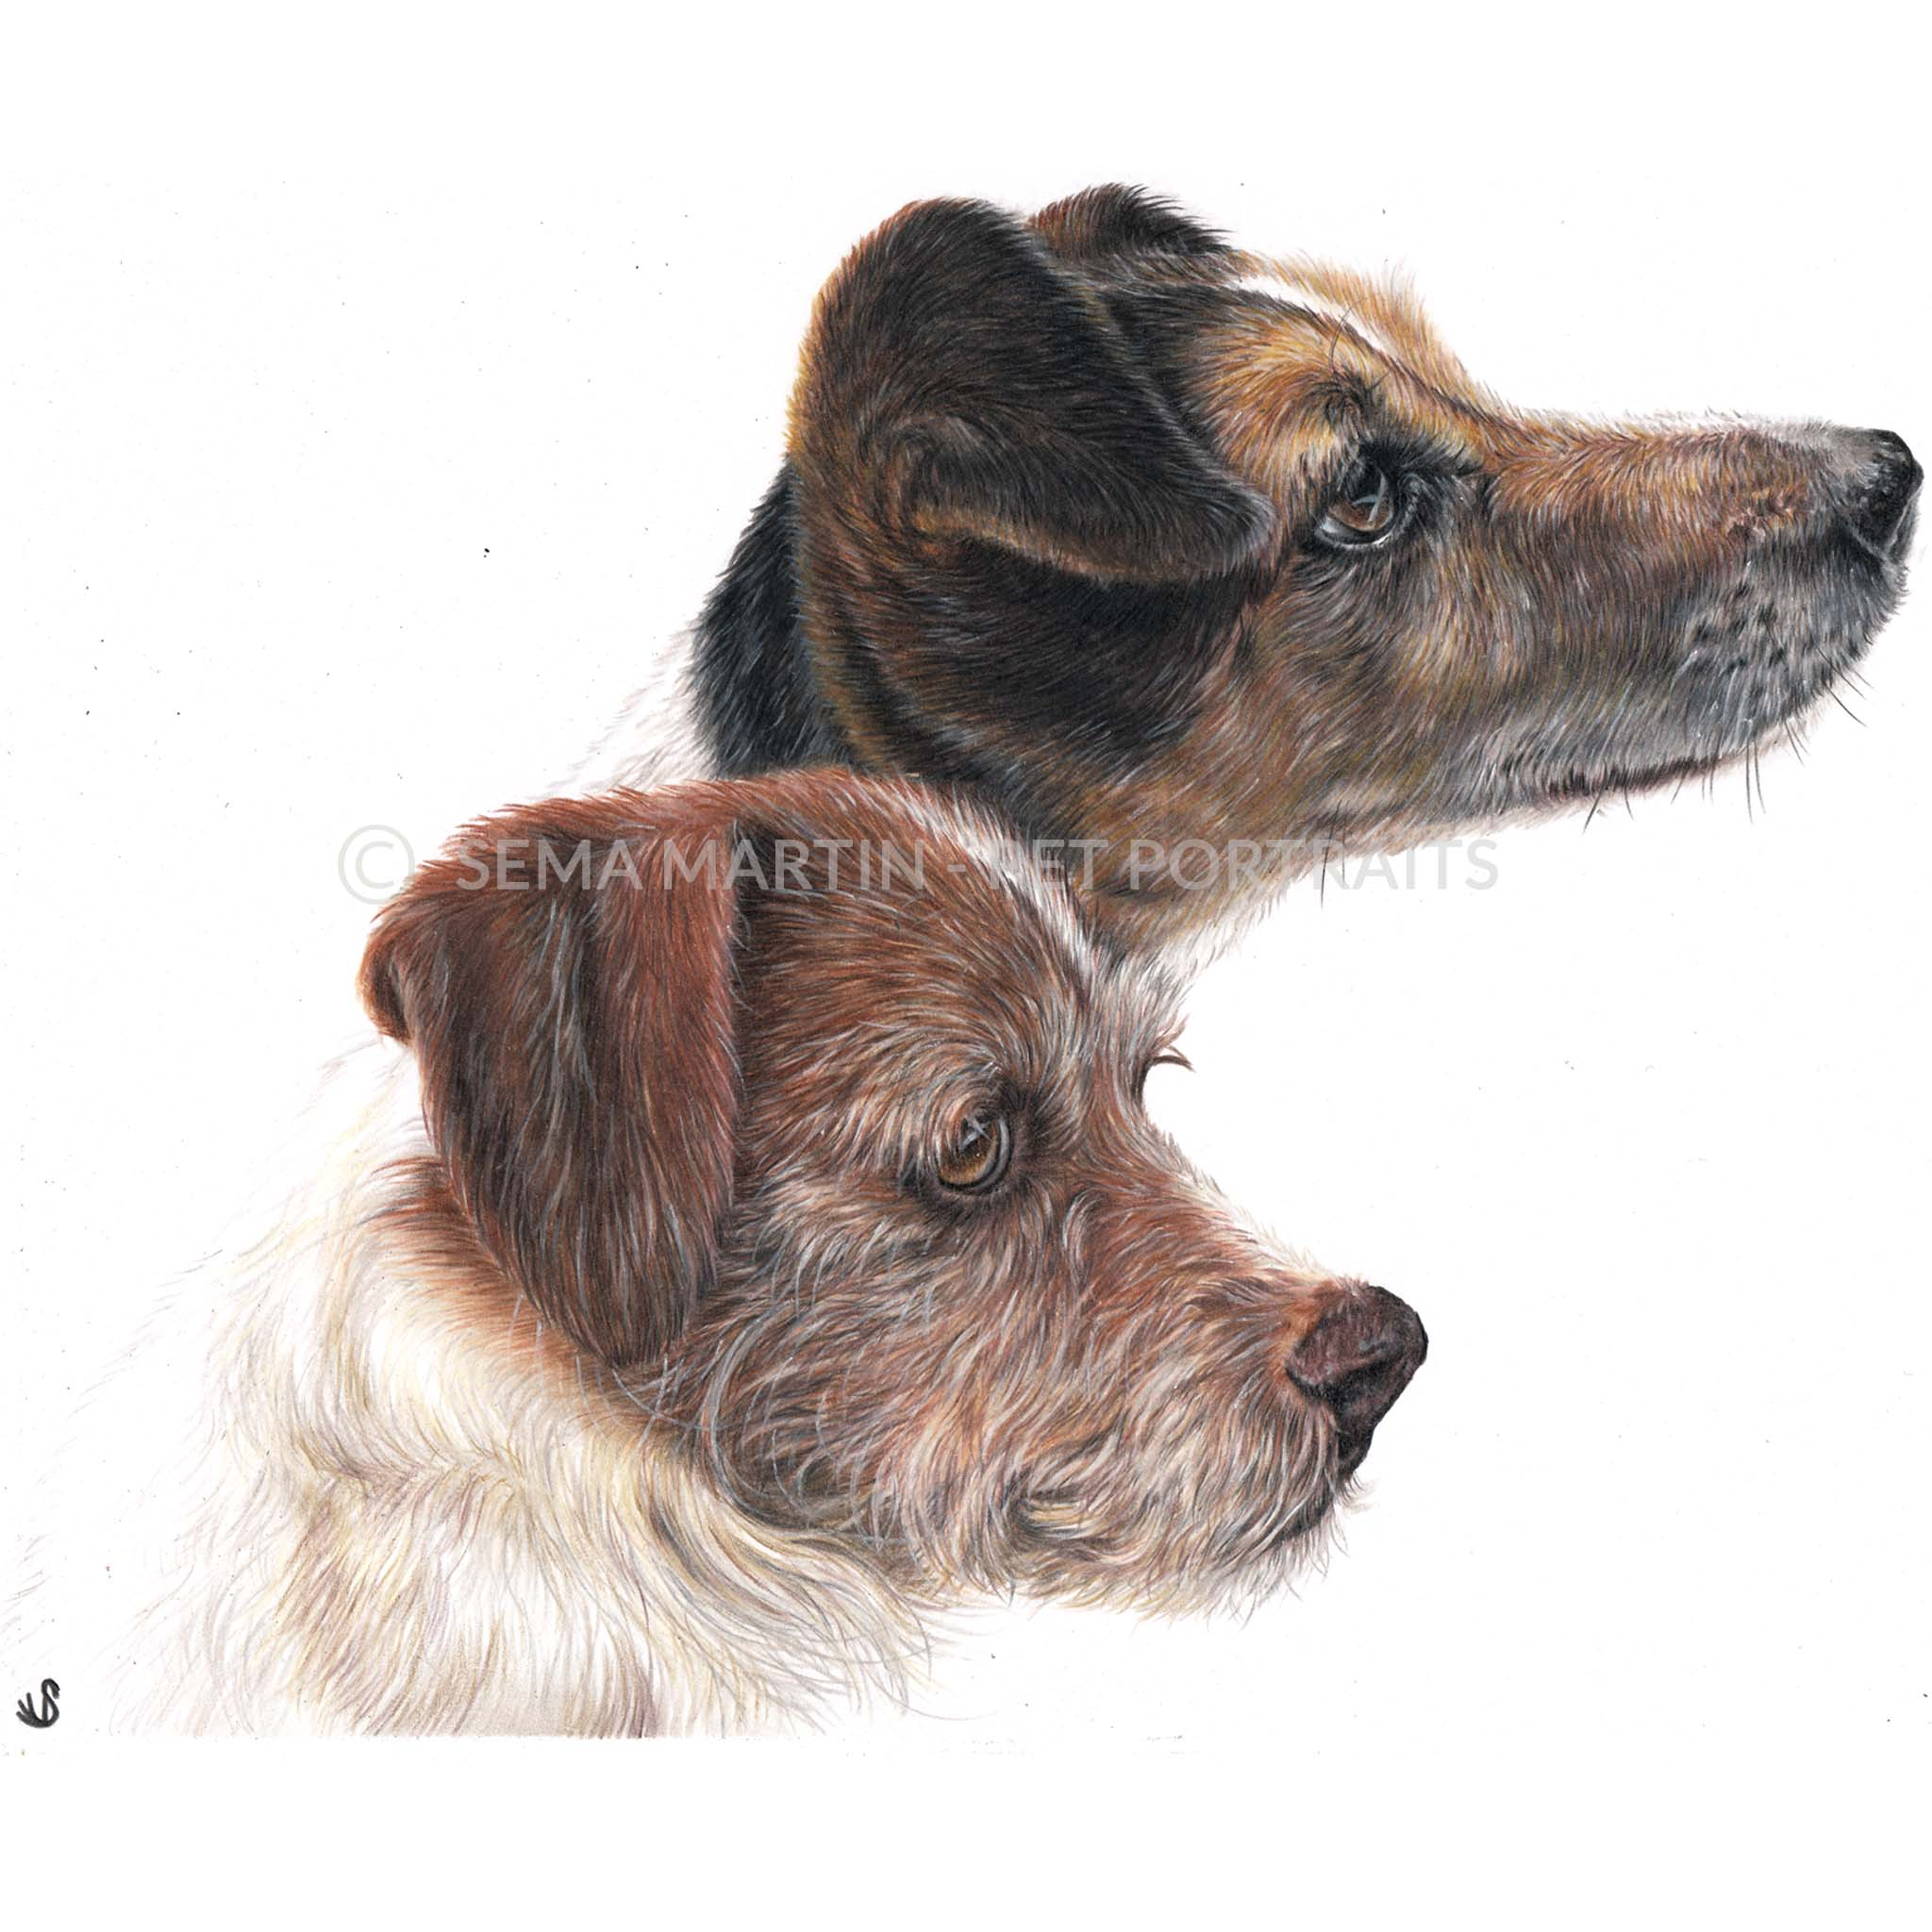 'Tu Tu & Tinsel' - UK, 8.3 x 11.7 inches, 2019, Custom Colour Pencil Portait of two Jack Russell Terriers